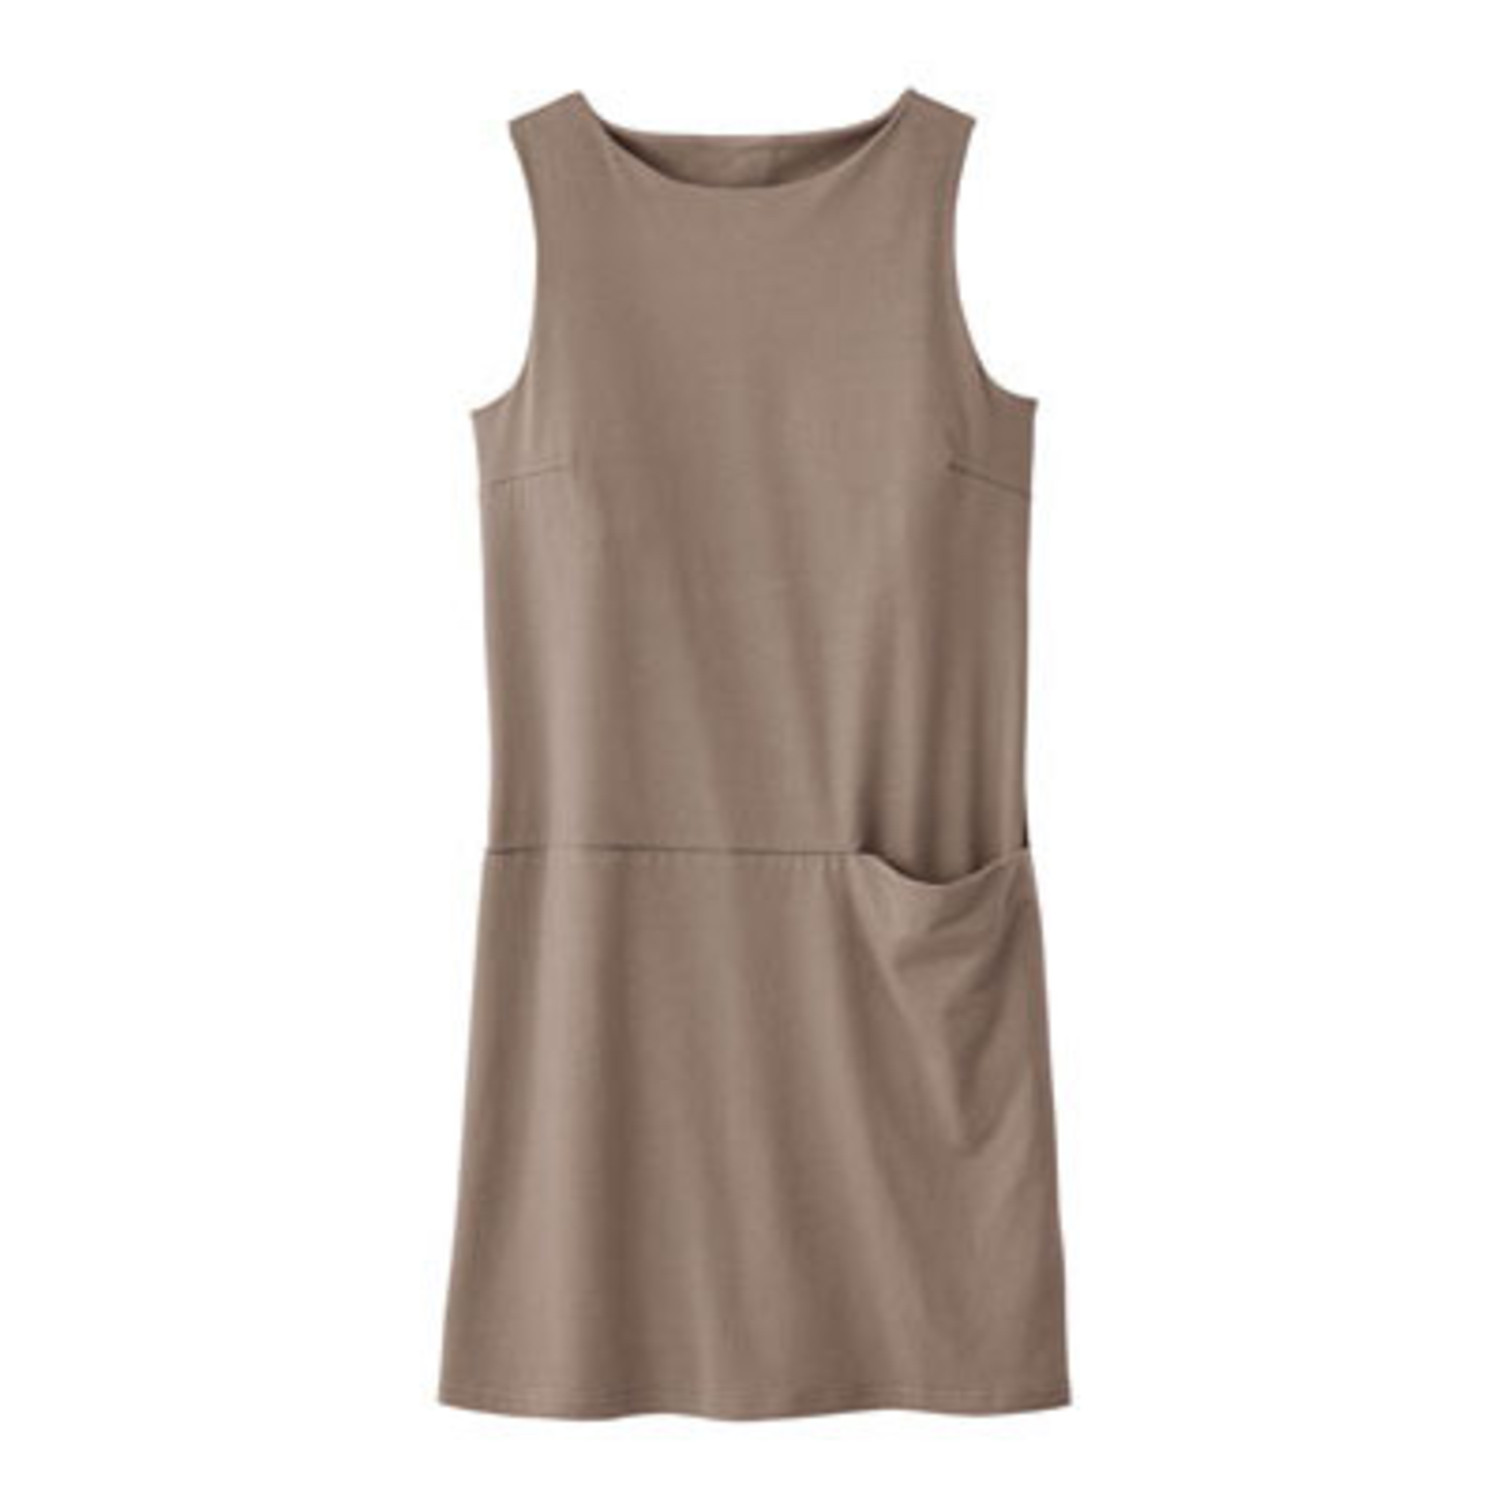 Jersey-Kleid, taupe